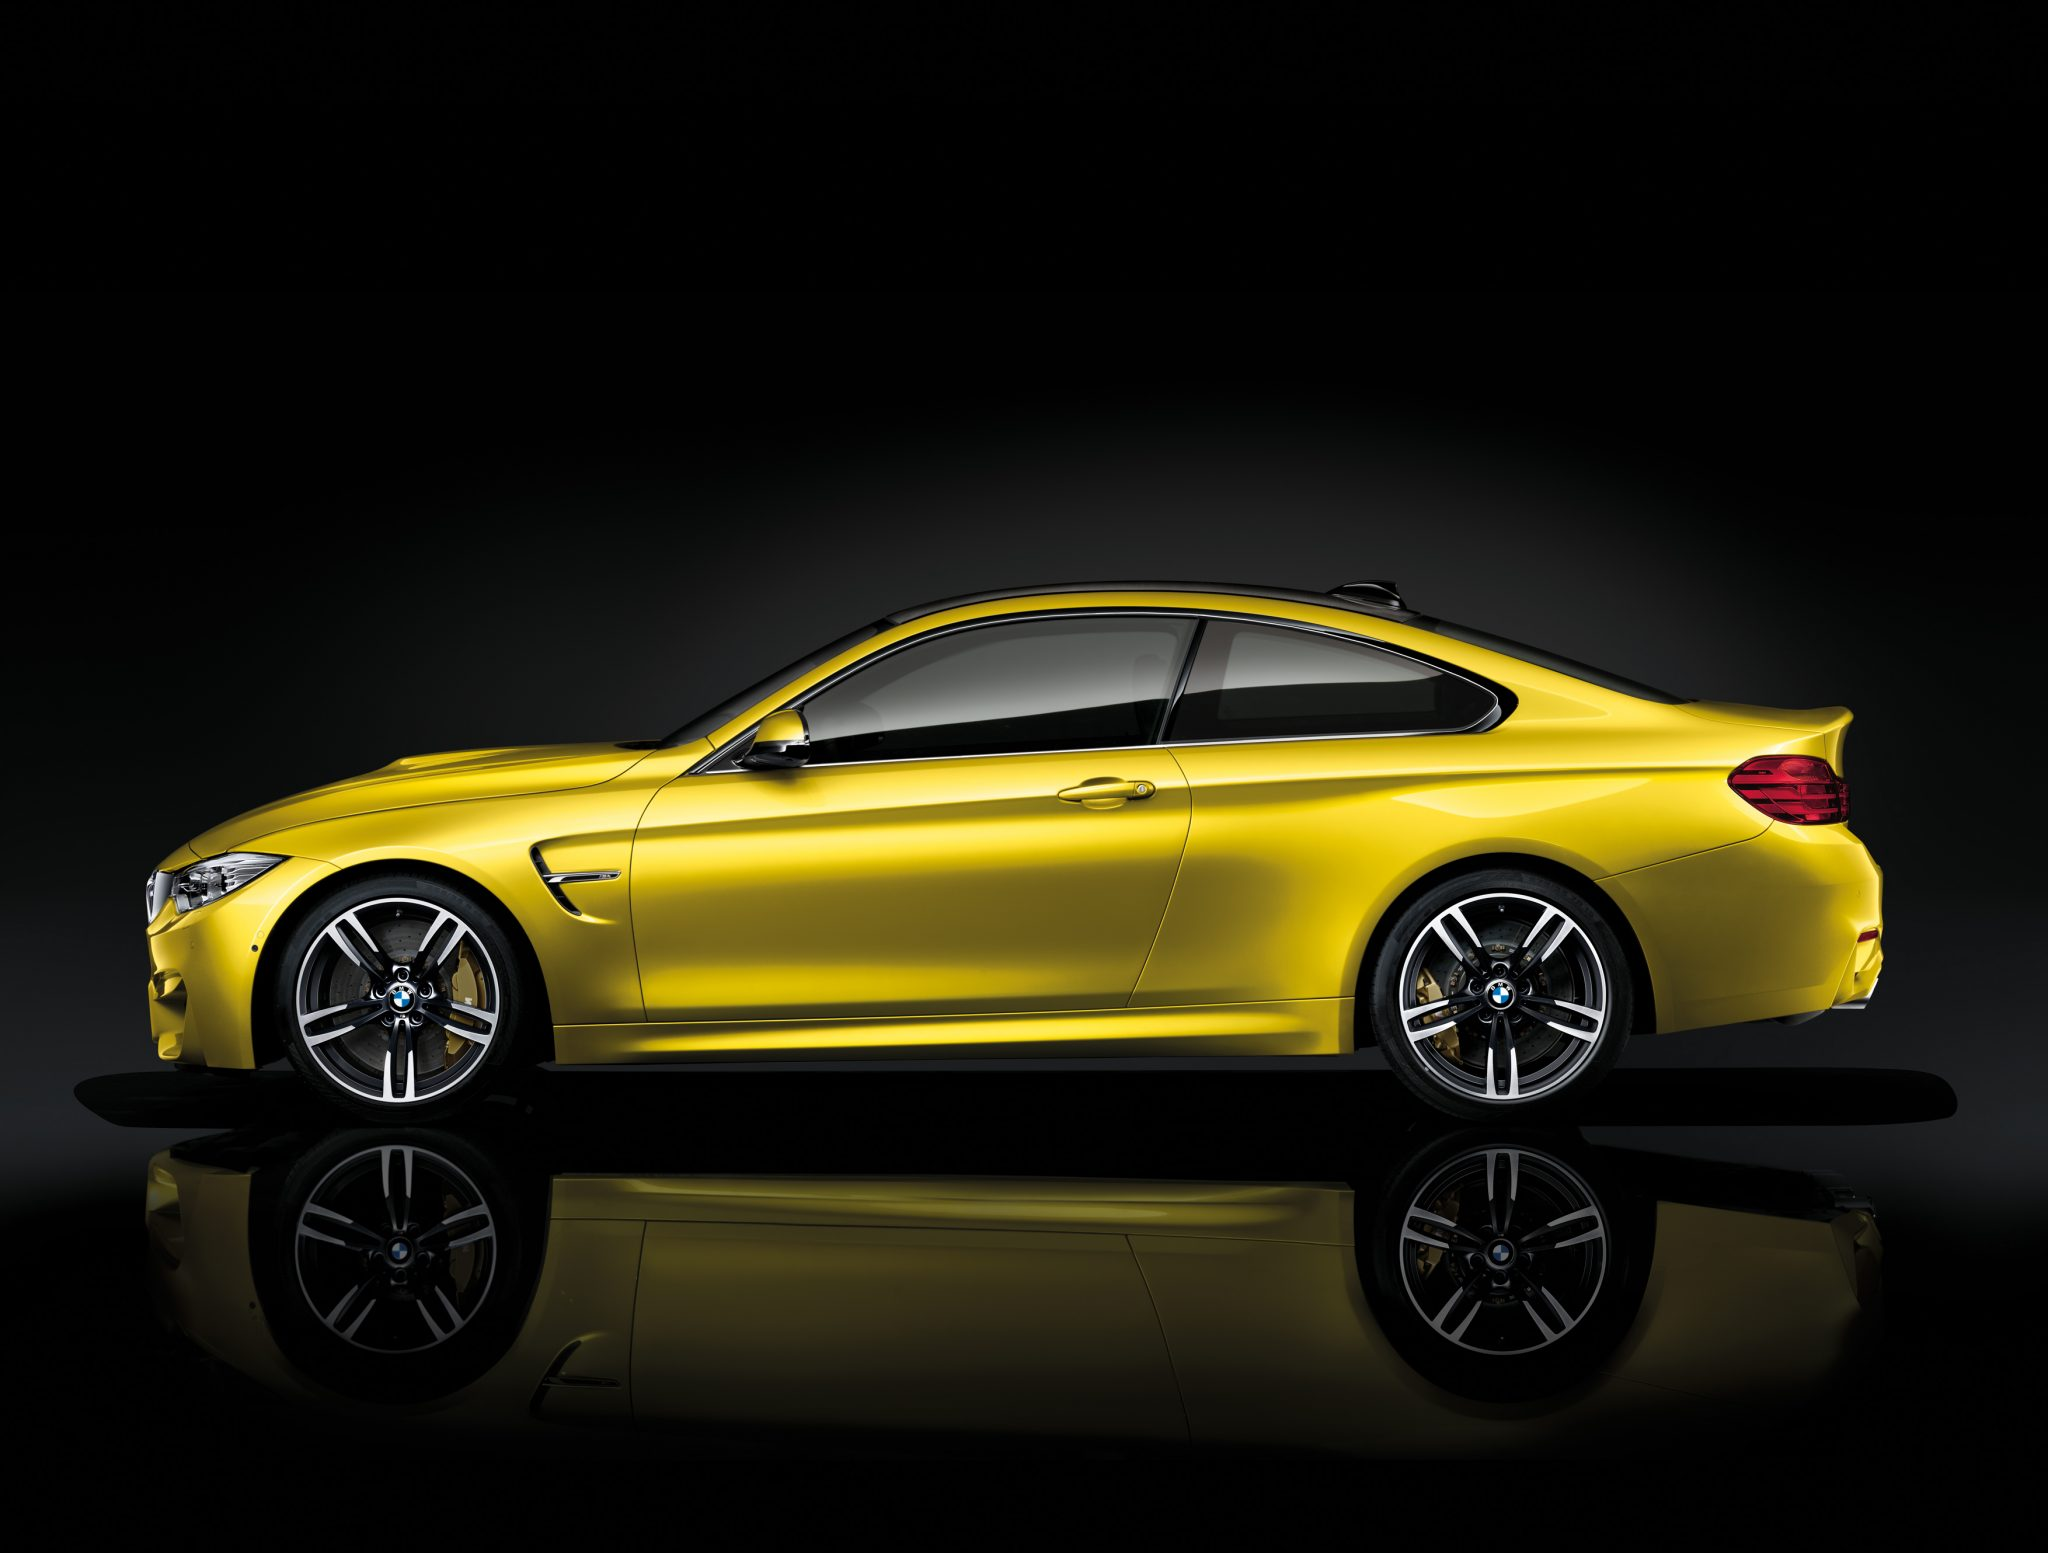 BMW M4 Coupe >> BMW M4 Coupe Showcase Driver Side View | The News Wheel